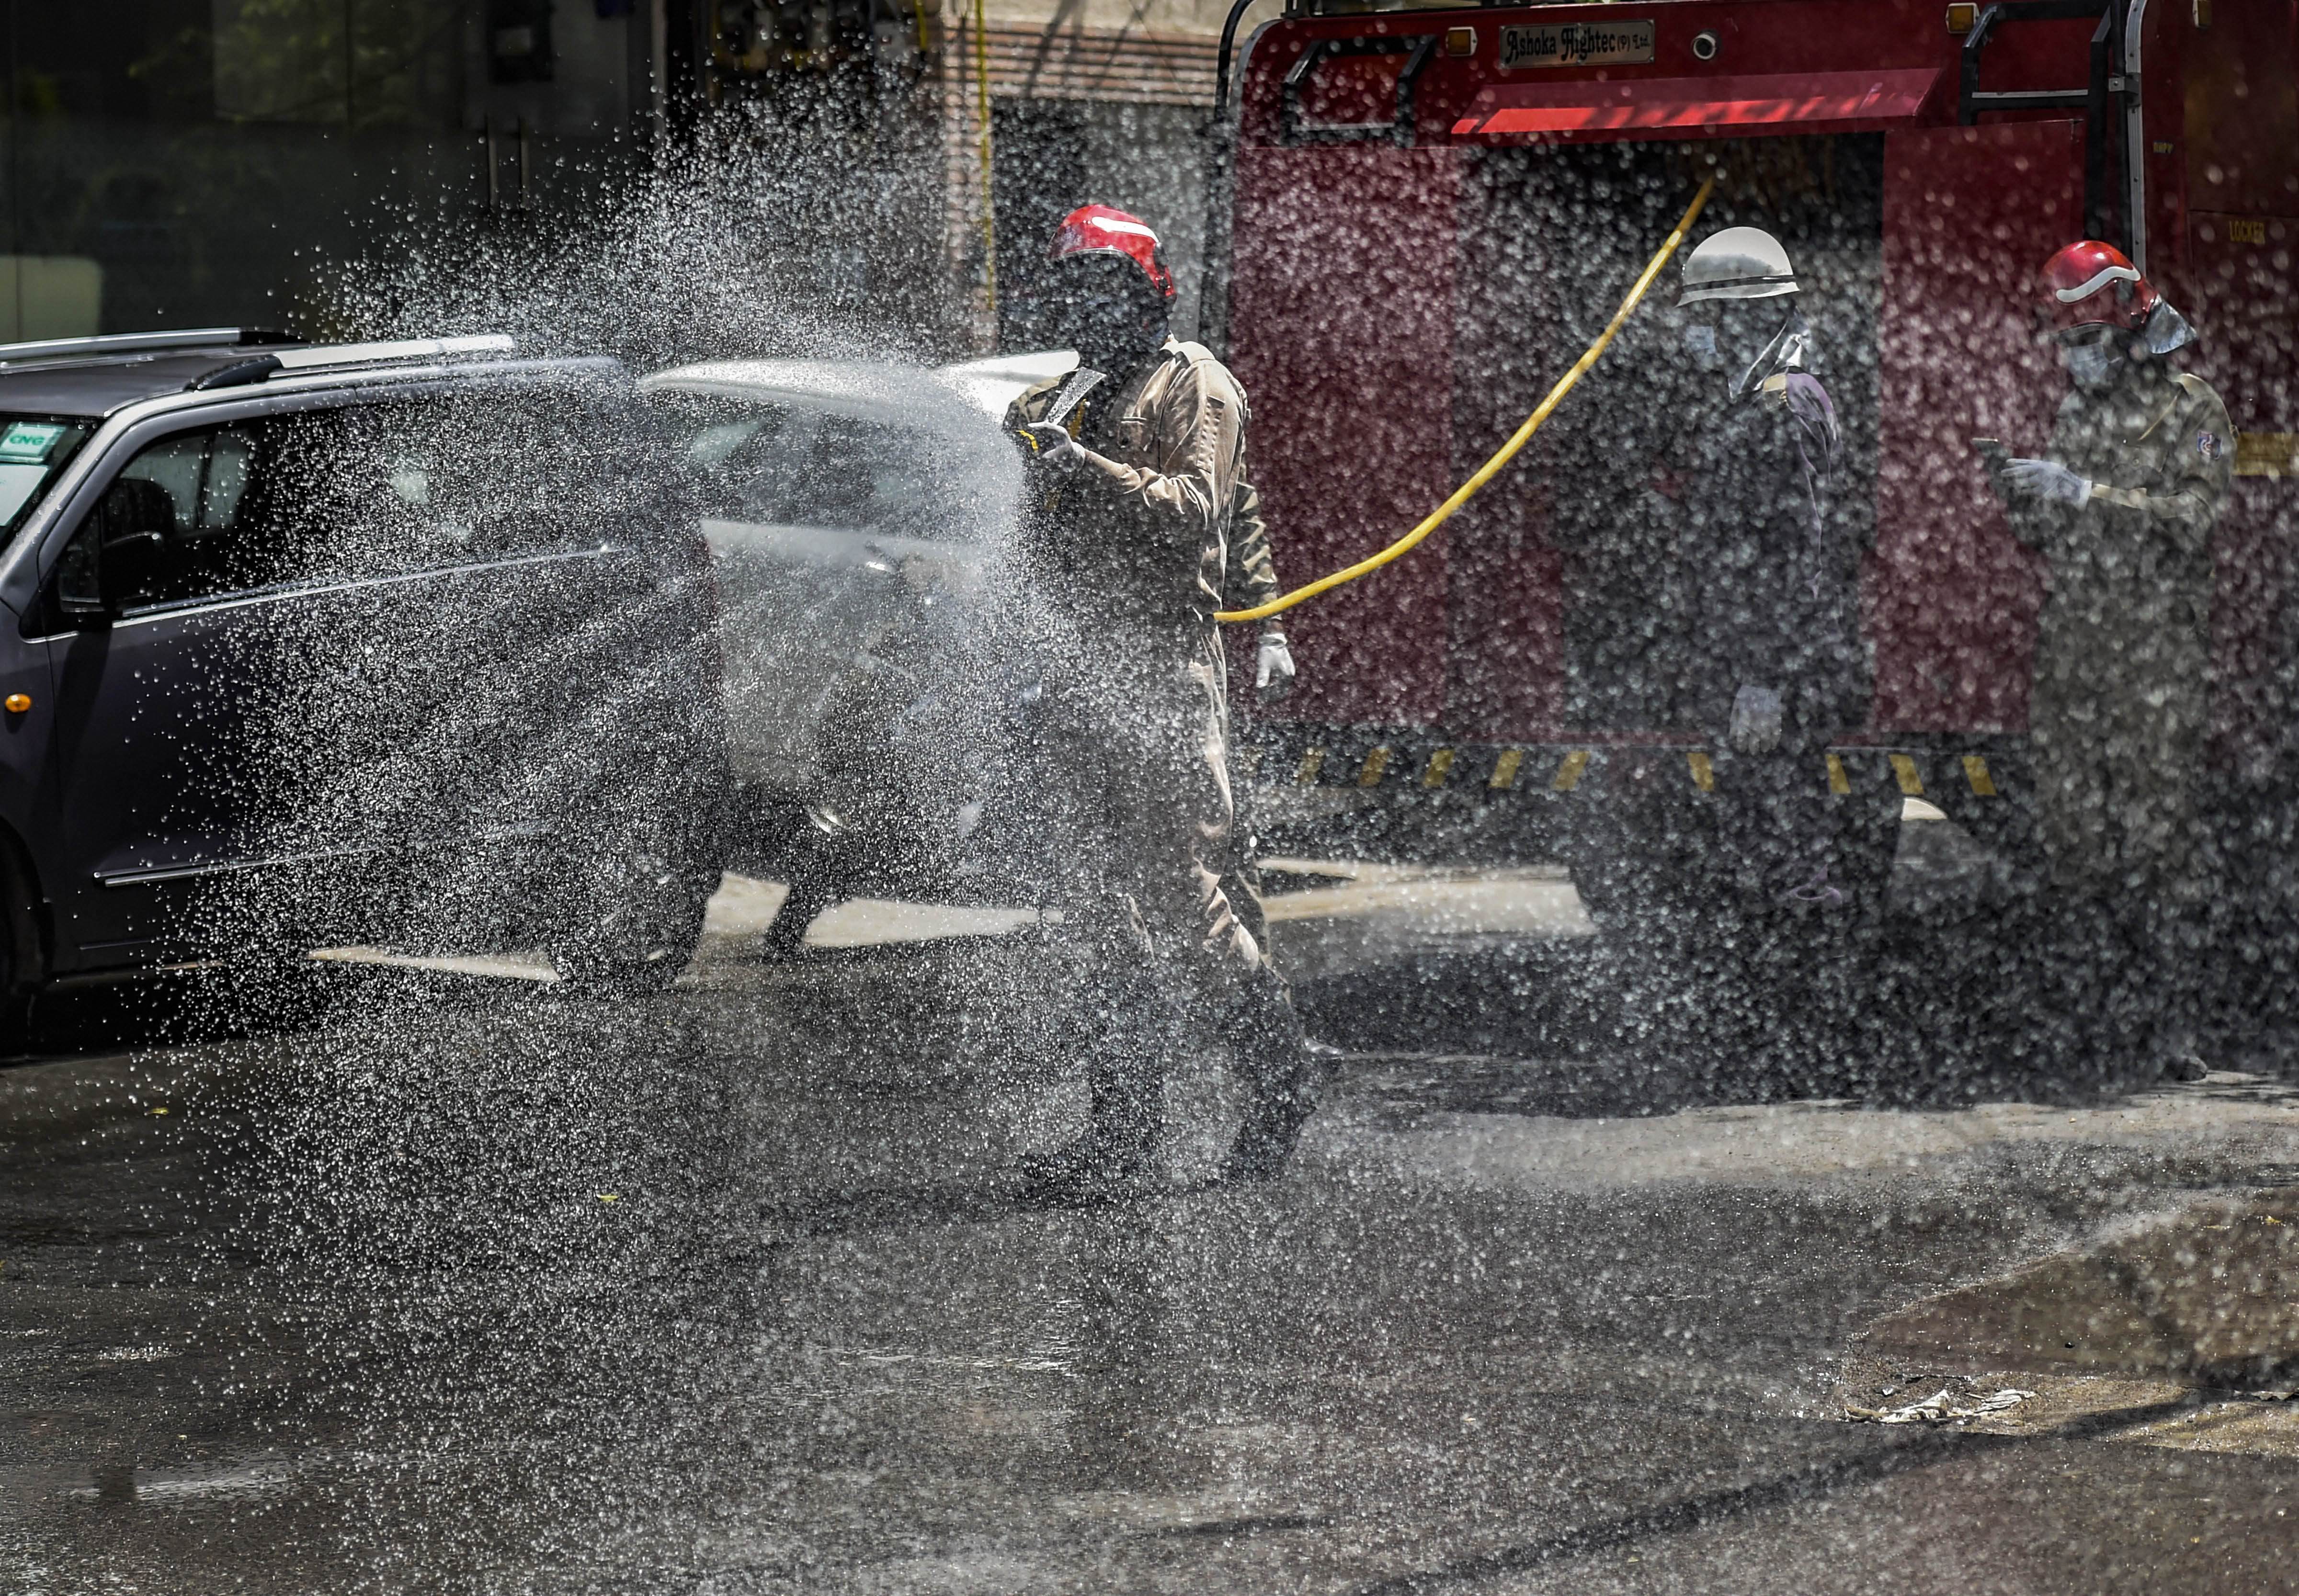 Firefighters spray disinfectants at Bhogal during the nationwide lockdown to curb the spread of coronavirus, in New Delhi, Thursday, April 9, 2020